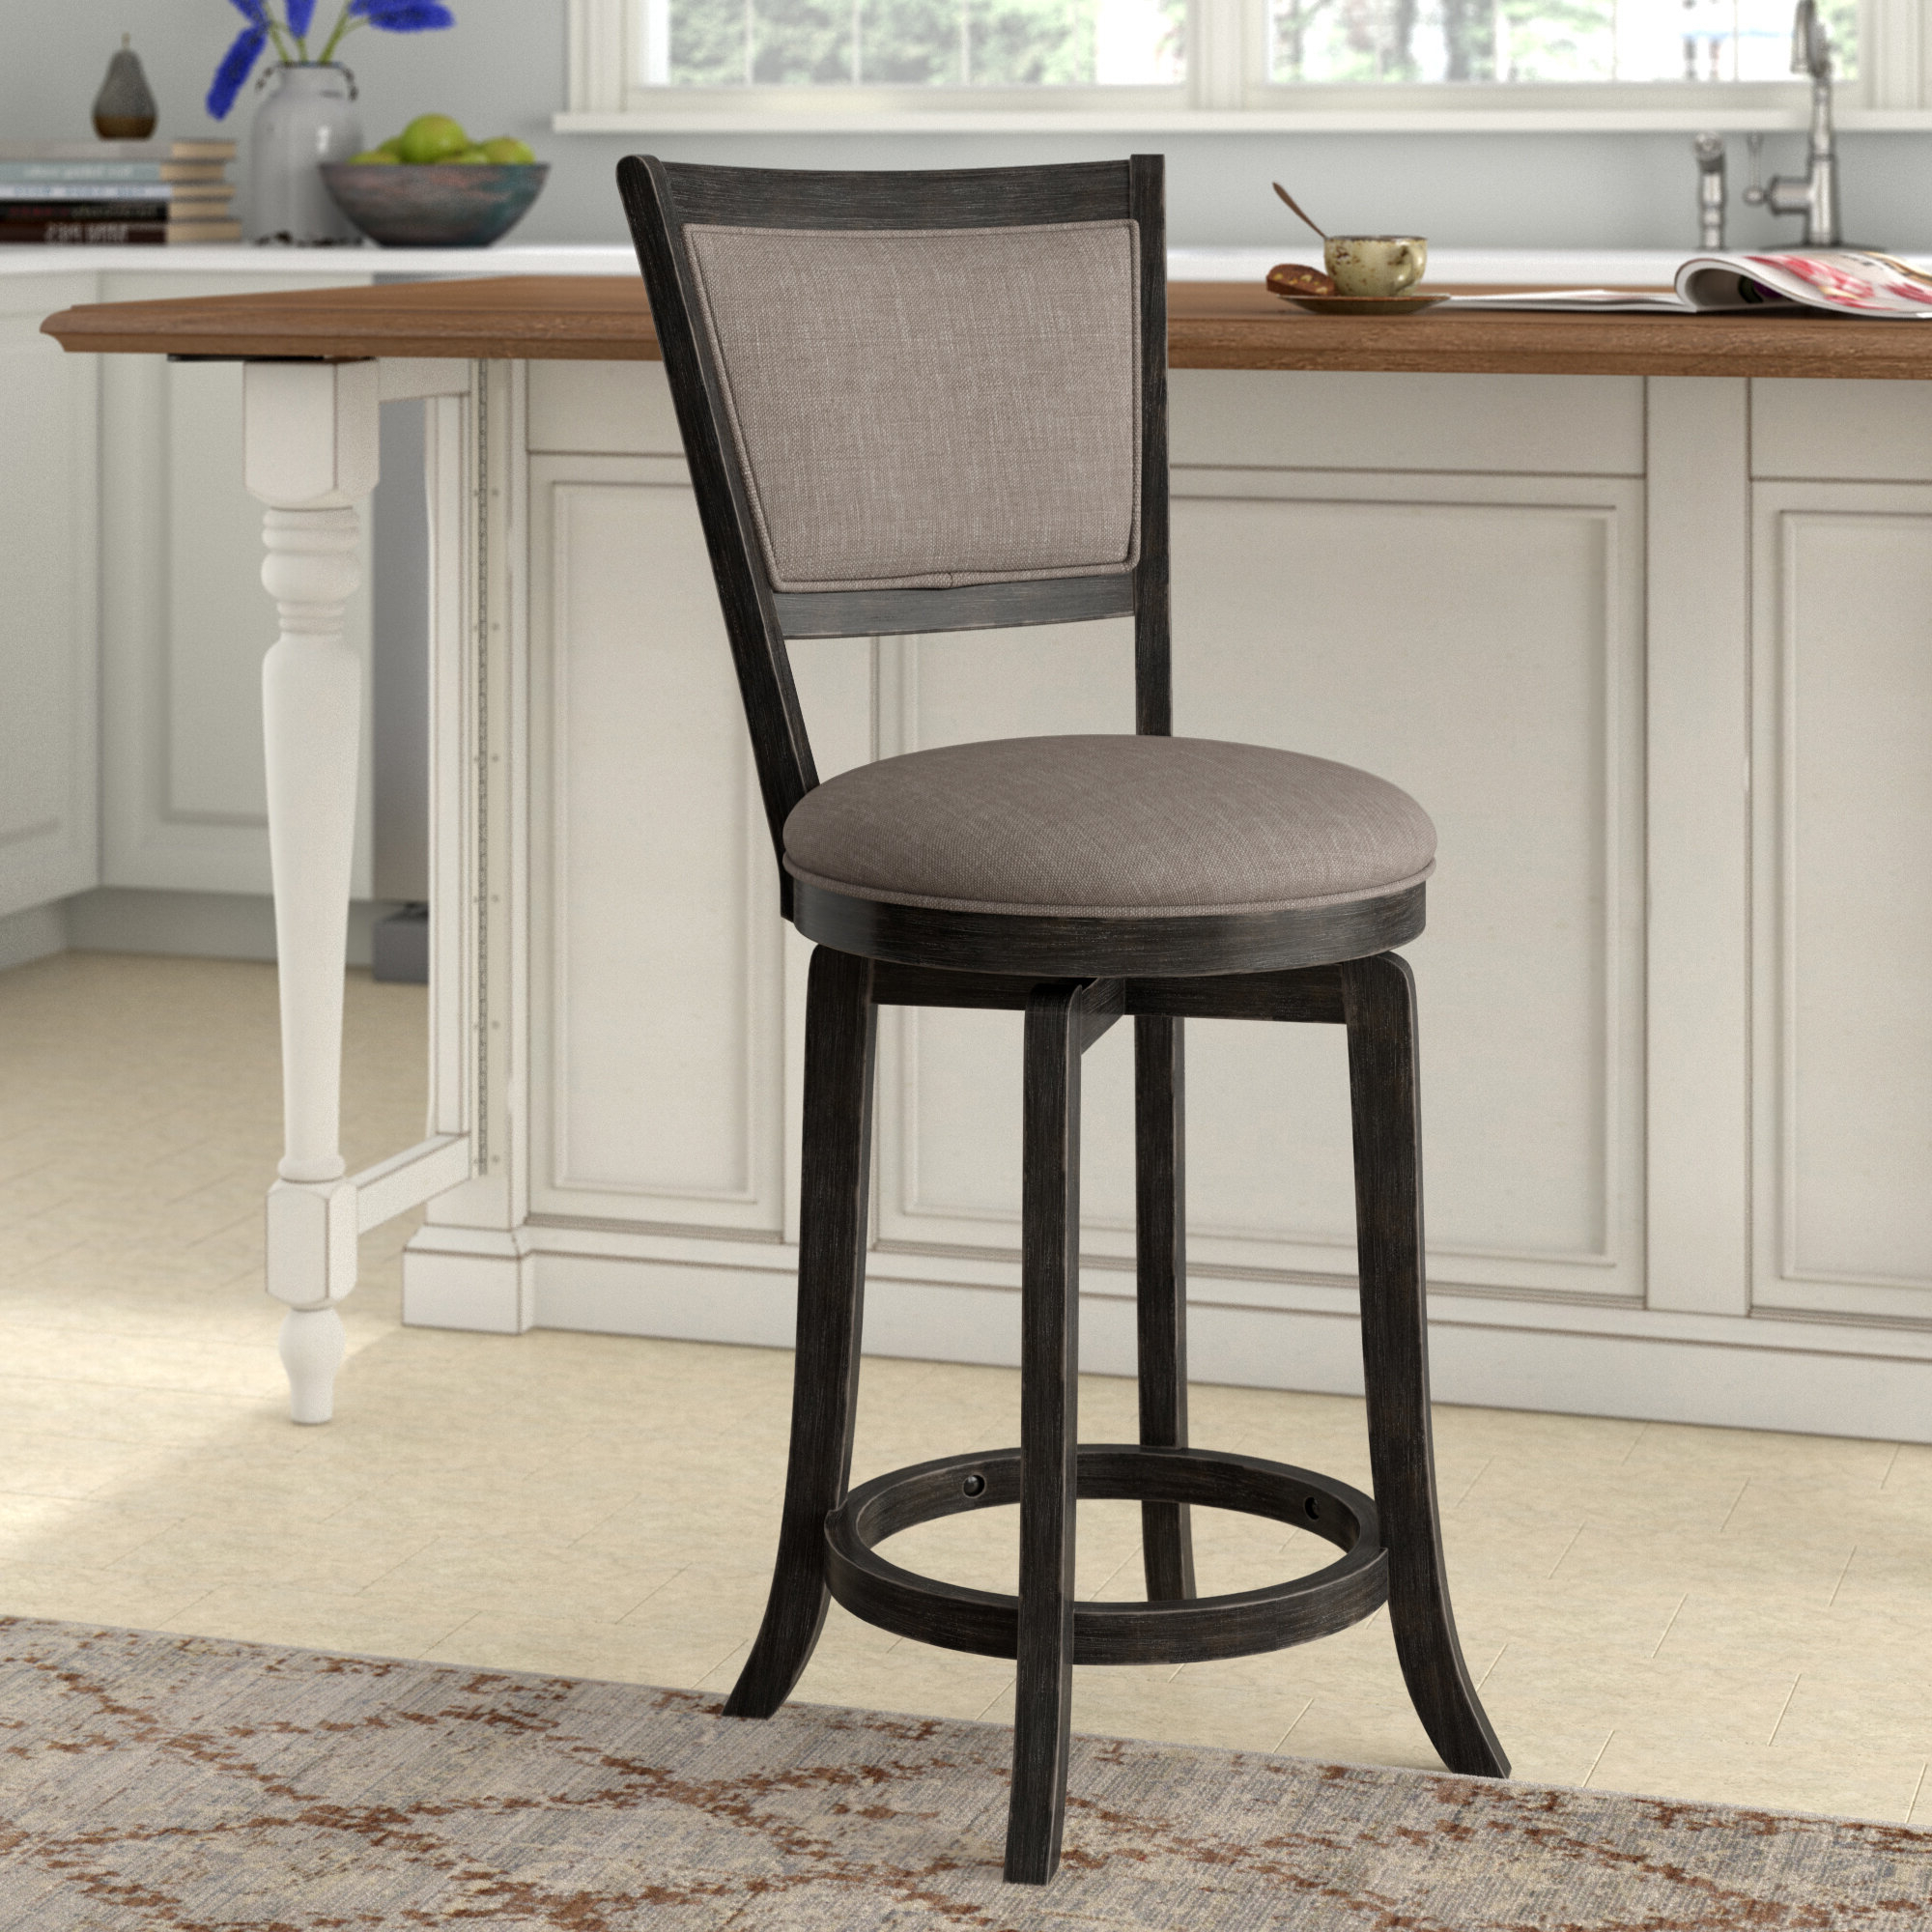 Standwood Metal Garden Stools For 2019 Gracie Oaks Bar Stools & Counter Stools You'll Love In (View 25 of 30)